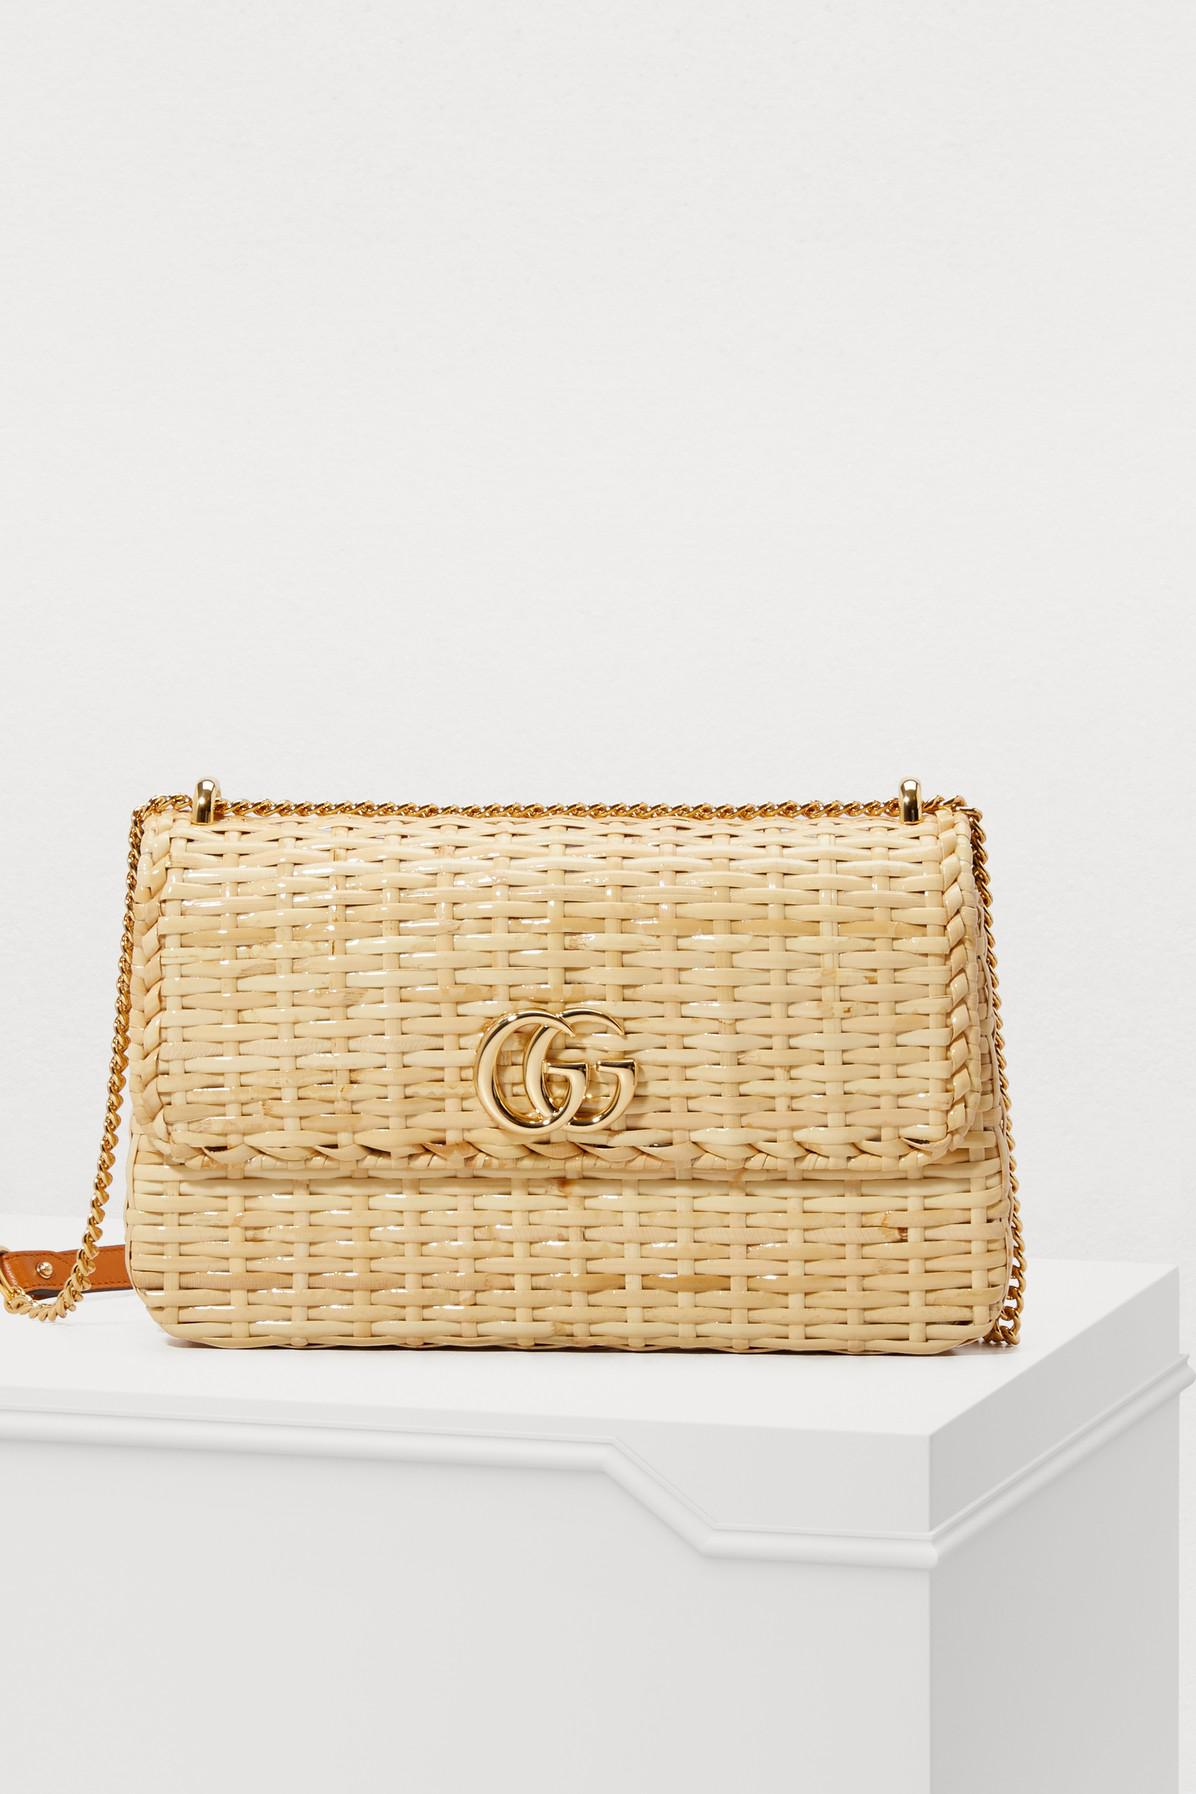 c8958faa2 Gucci Cestino Straw Shoulder Bag in Natural - Lyst